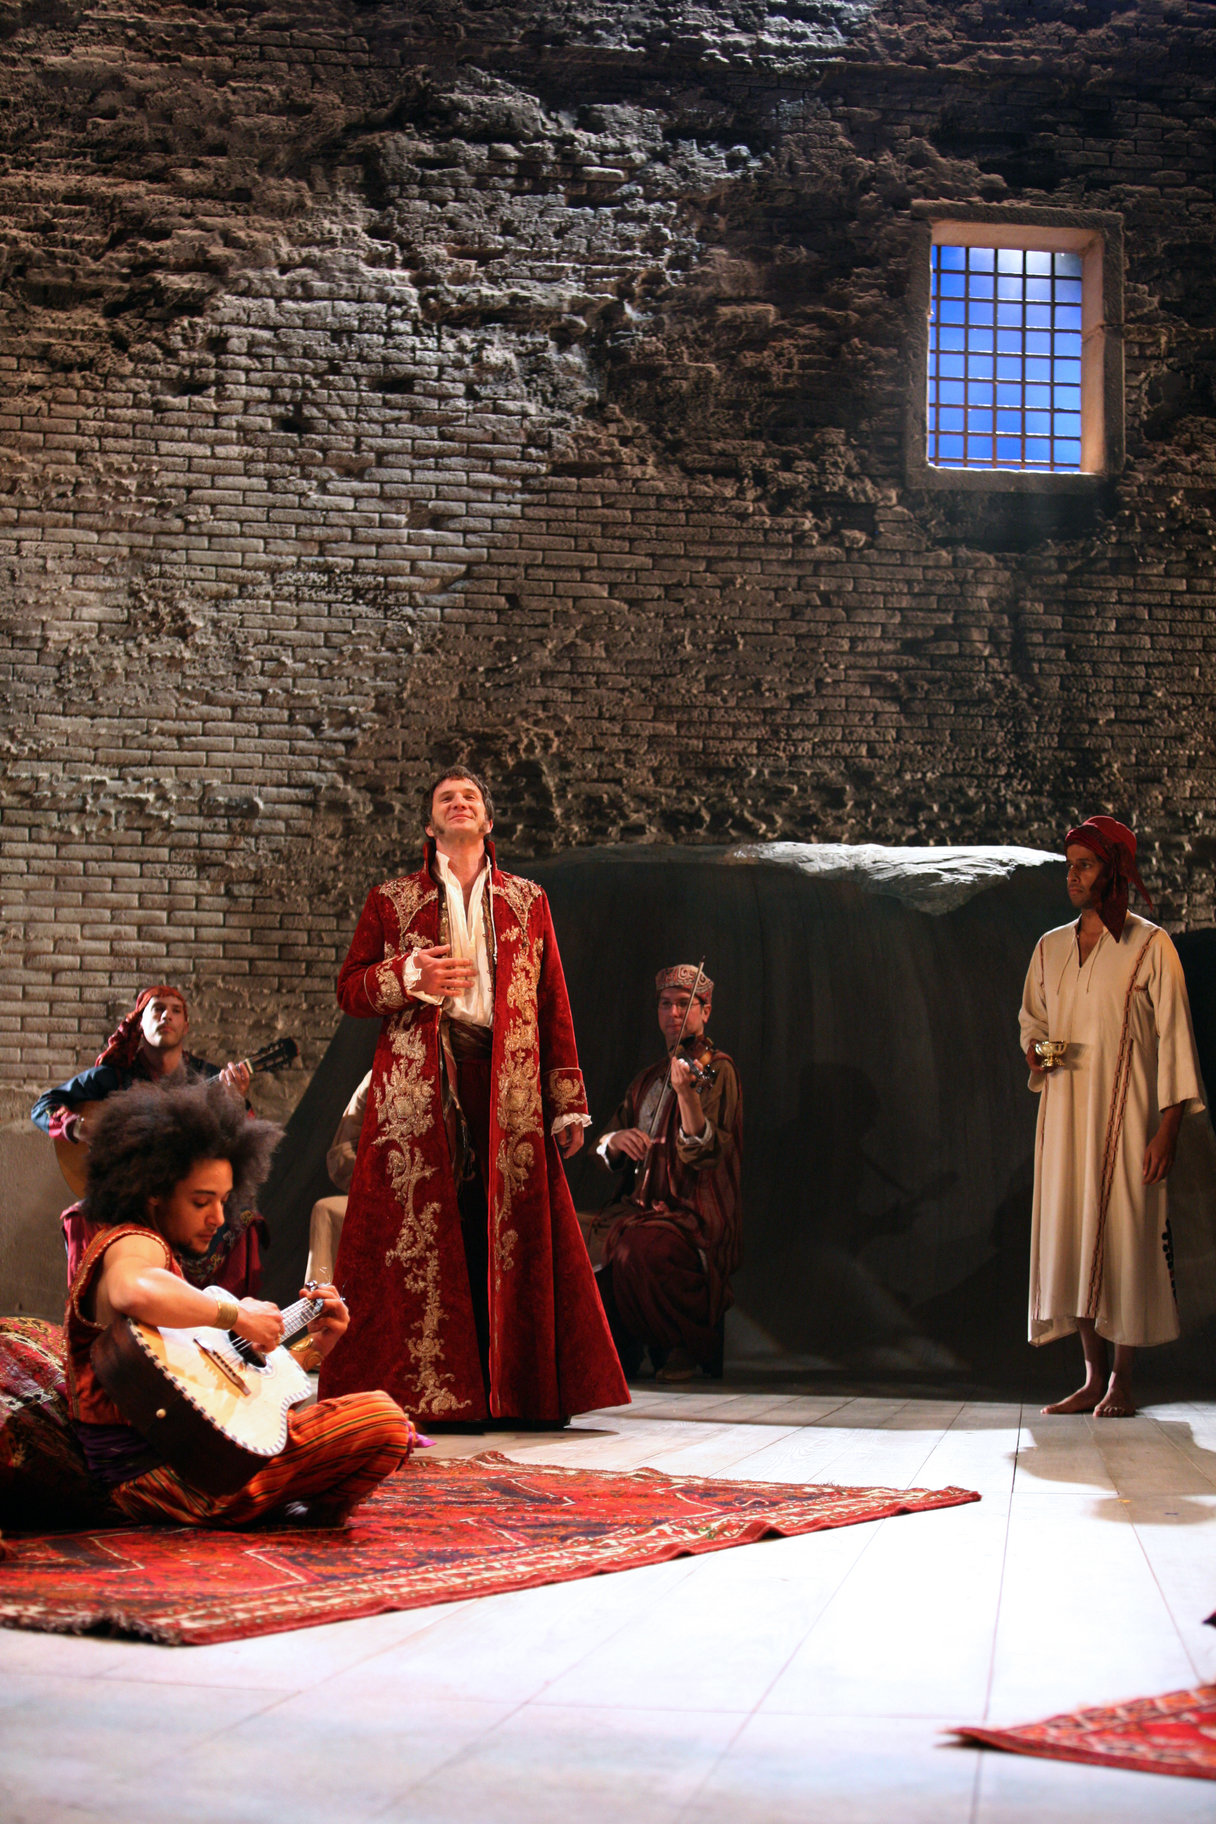 Orsino stands in a red and gold gown at his court listening to musicians who sit on the floor on rugs in the 2009 production of Twelfth Night.